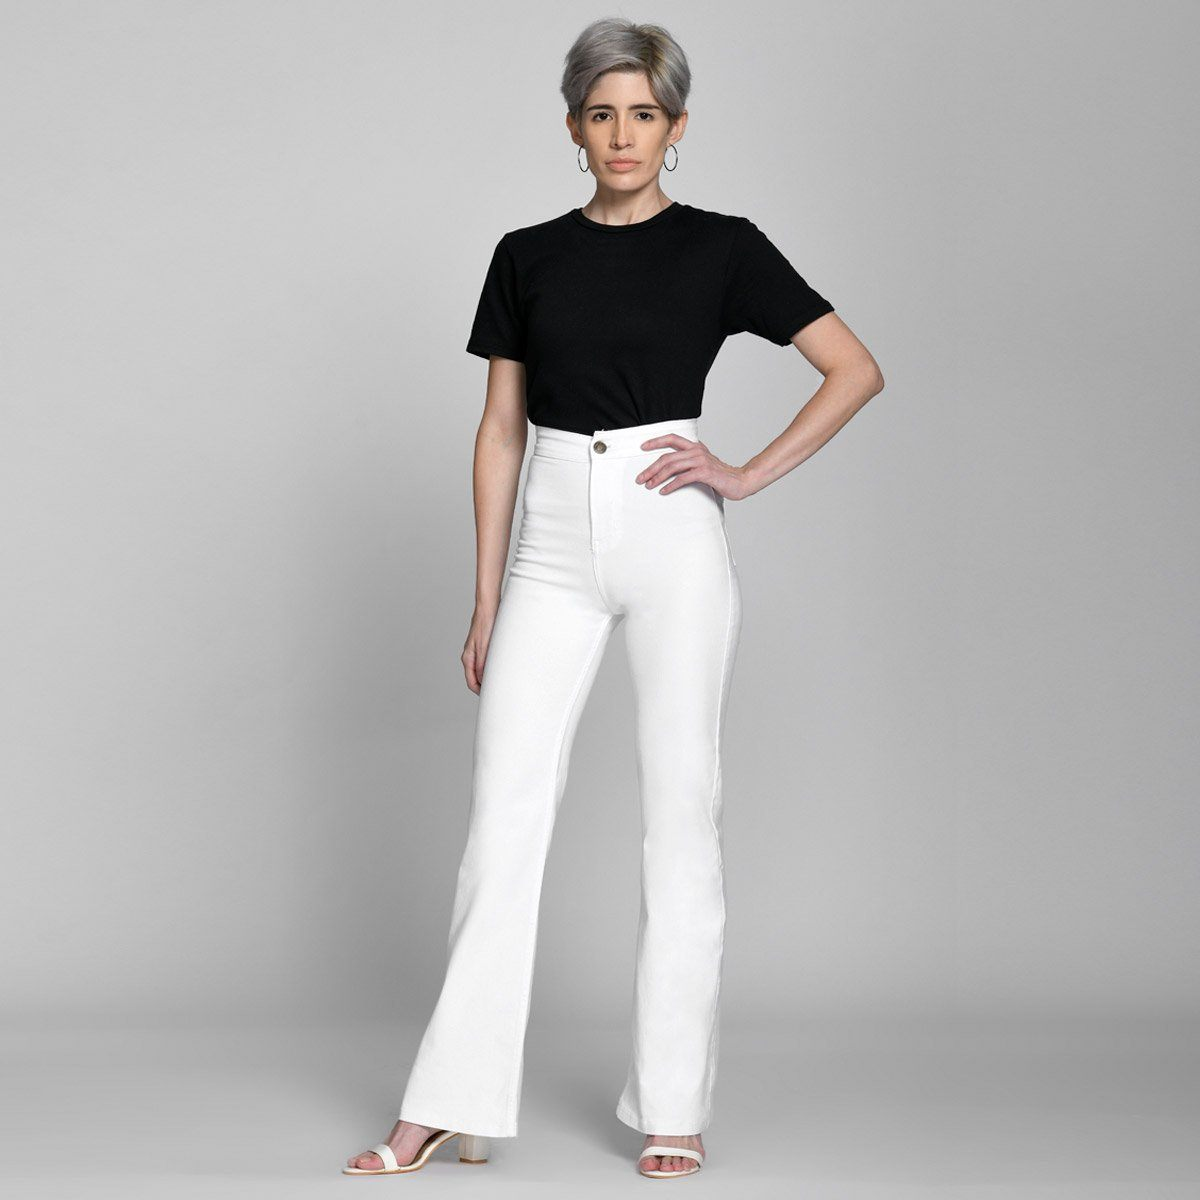 White Extreme Wide Leg High Waist Jeans by Madish